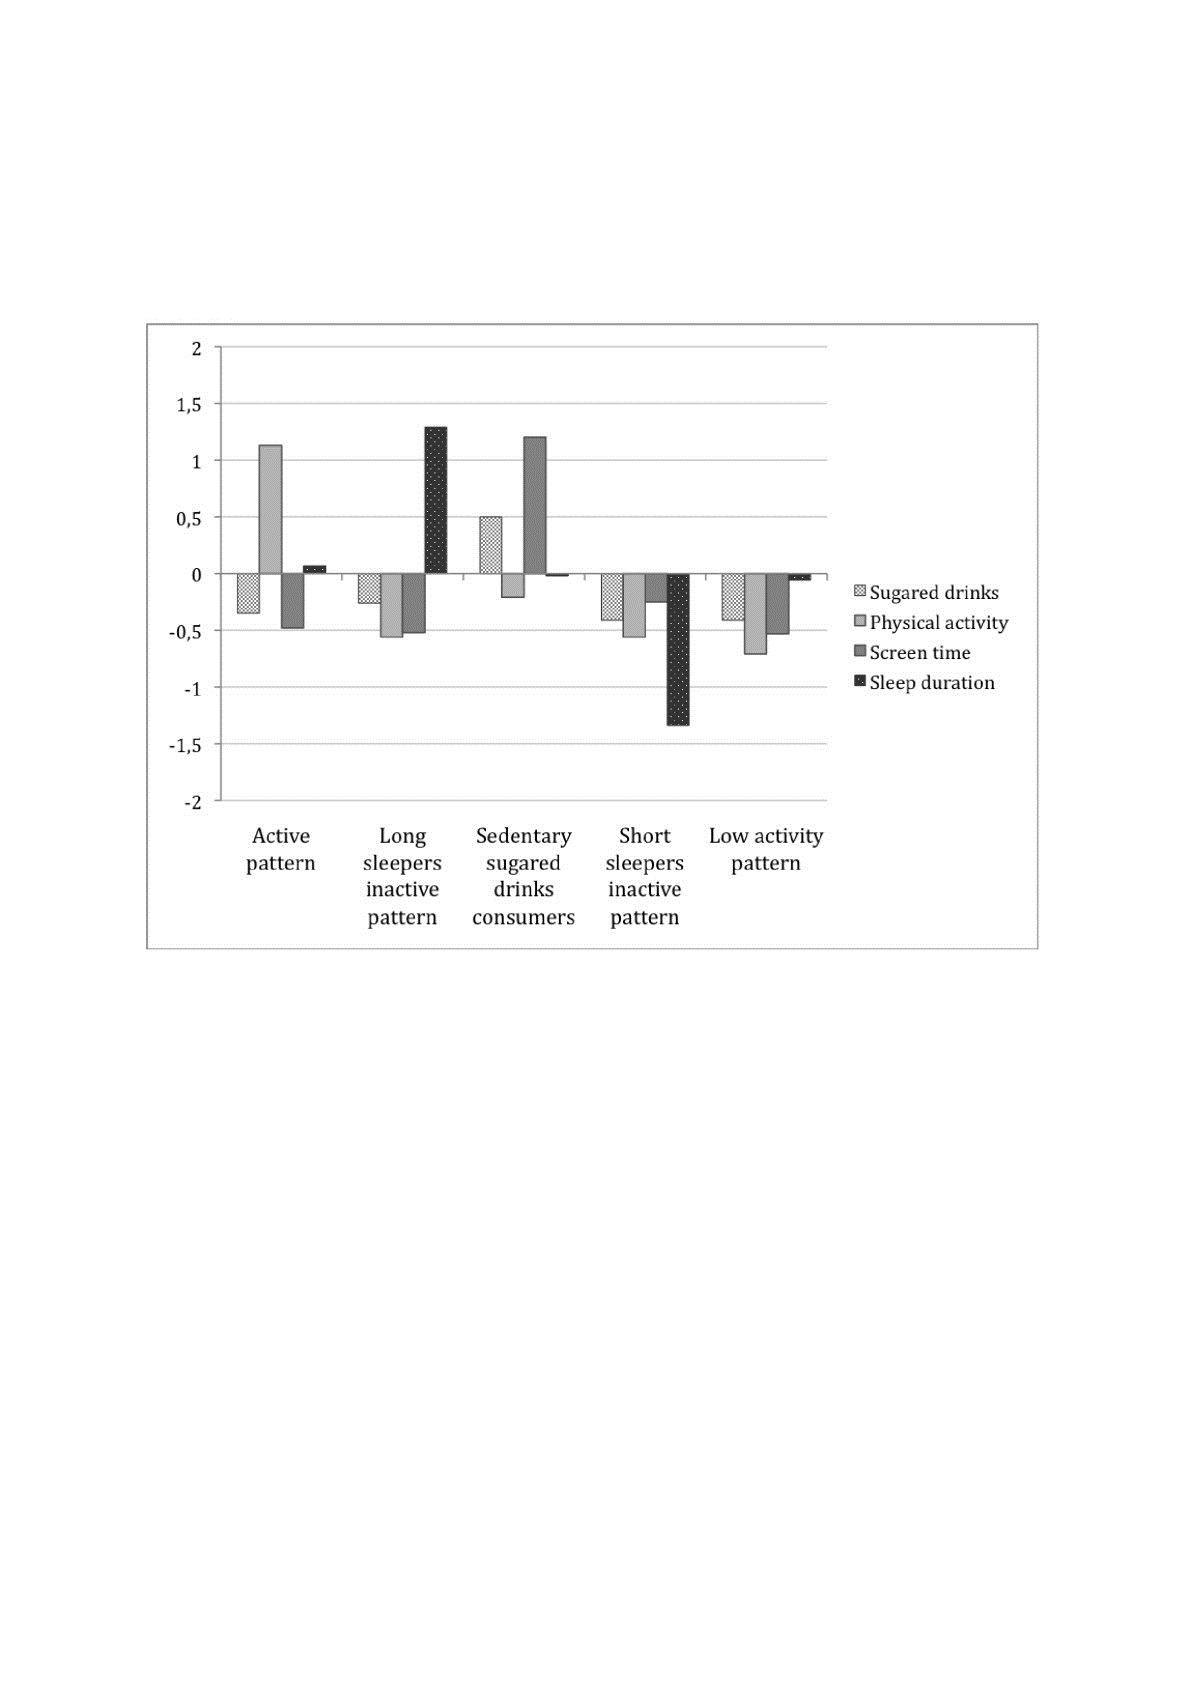 http://static-content.springer.com/image/art%3A10.1186%2F1479-5868-10-5/MediaObjects/12966_2012_Article_725_Fig1_HTML.jpg